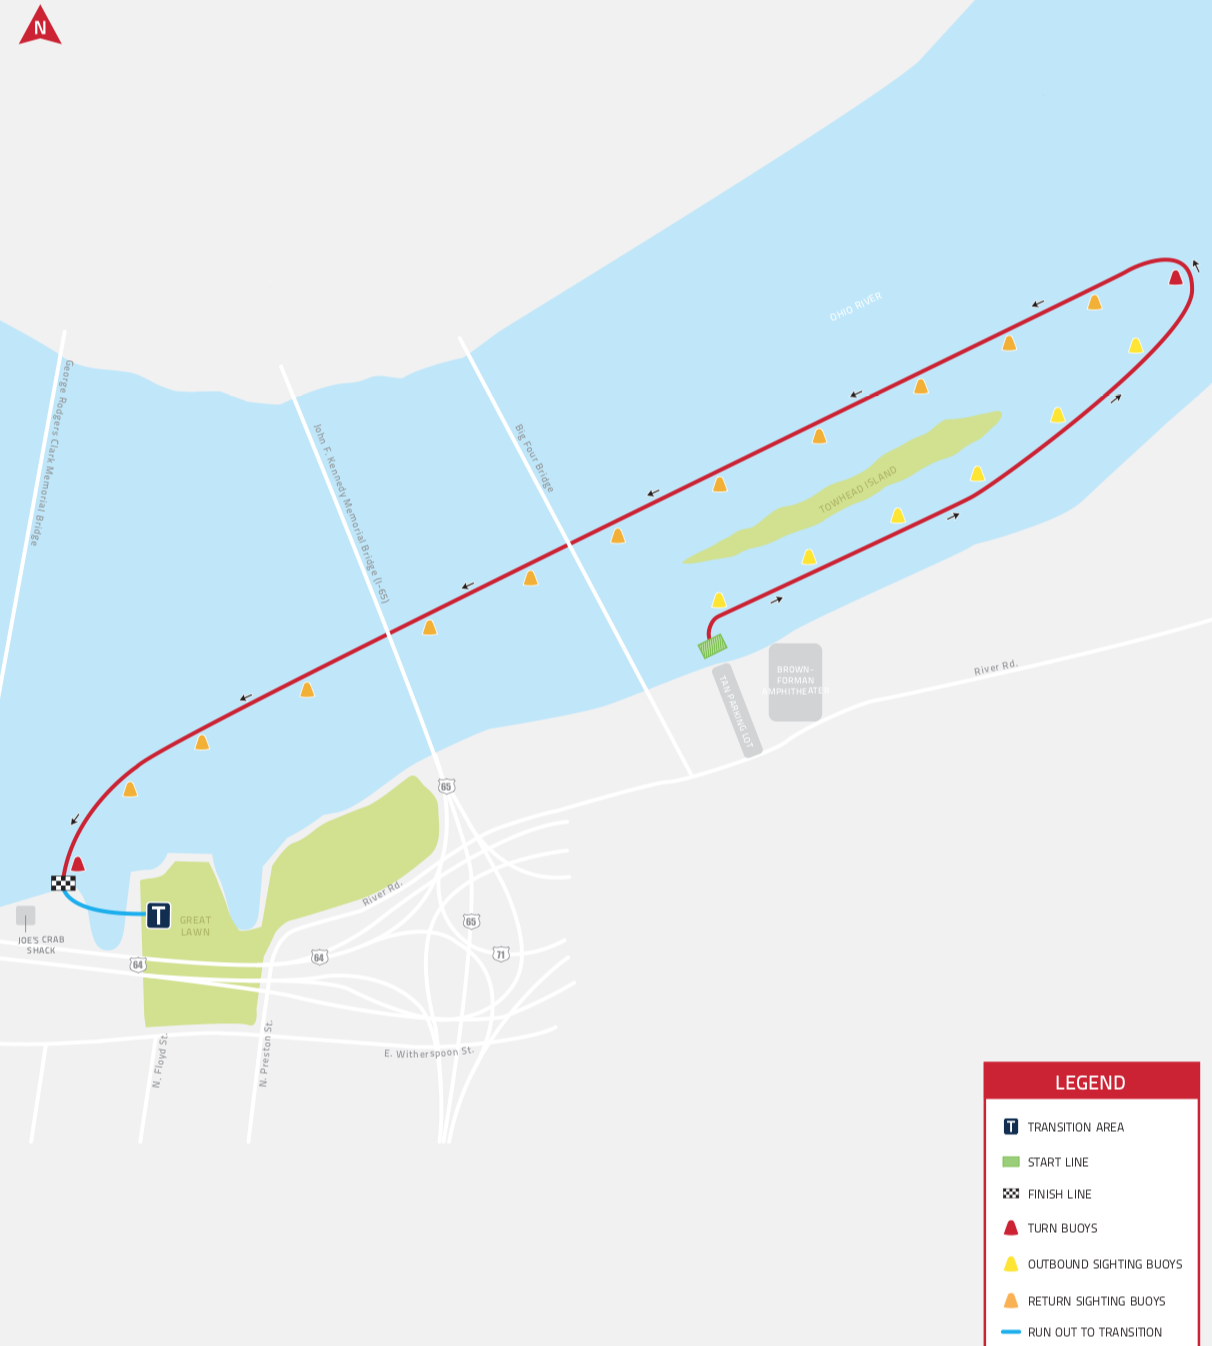 The 2.4-mile swim course is a unique, point-to-point swim set in a rolling start fashion (athlete position is a self-seeded start). Athletes will jump off the dock adjacent to the Tan Parking Lot and Brown-Forman Amphitheatre in Waterfront Park and finish at the wharf just west of the Great Lawn. The point-to-point swim begins in the protected waters behind Towhead Island before athletes enter the Ohio River's main channel and swim downstream toward the finish at the wharf by Joe's Crab Shack, just past The Great Lawn.